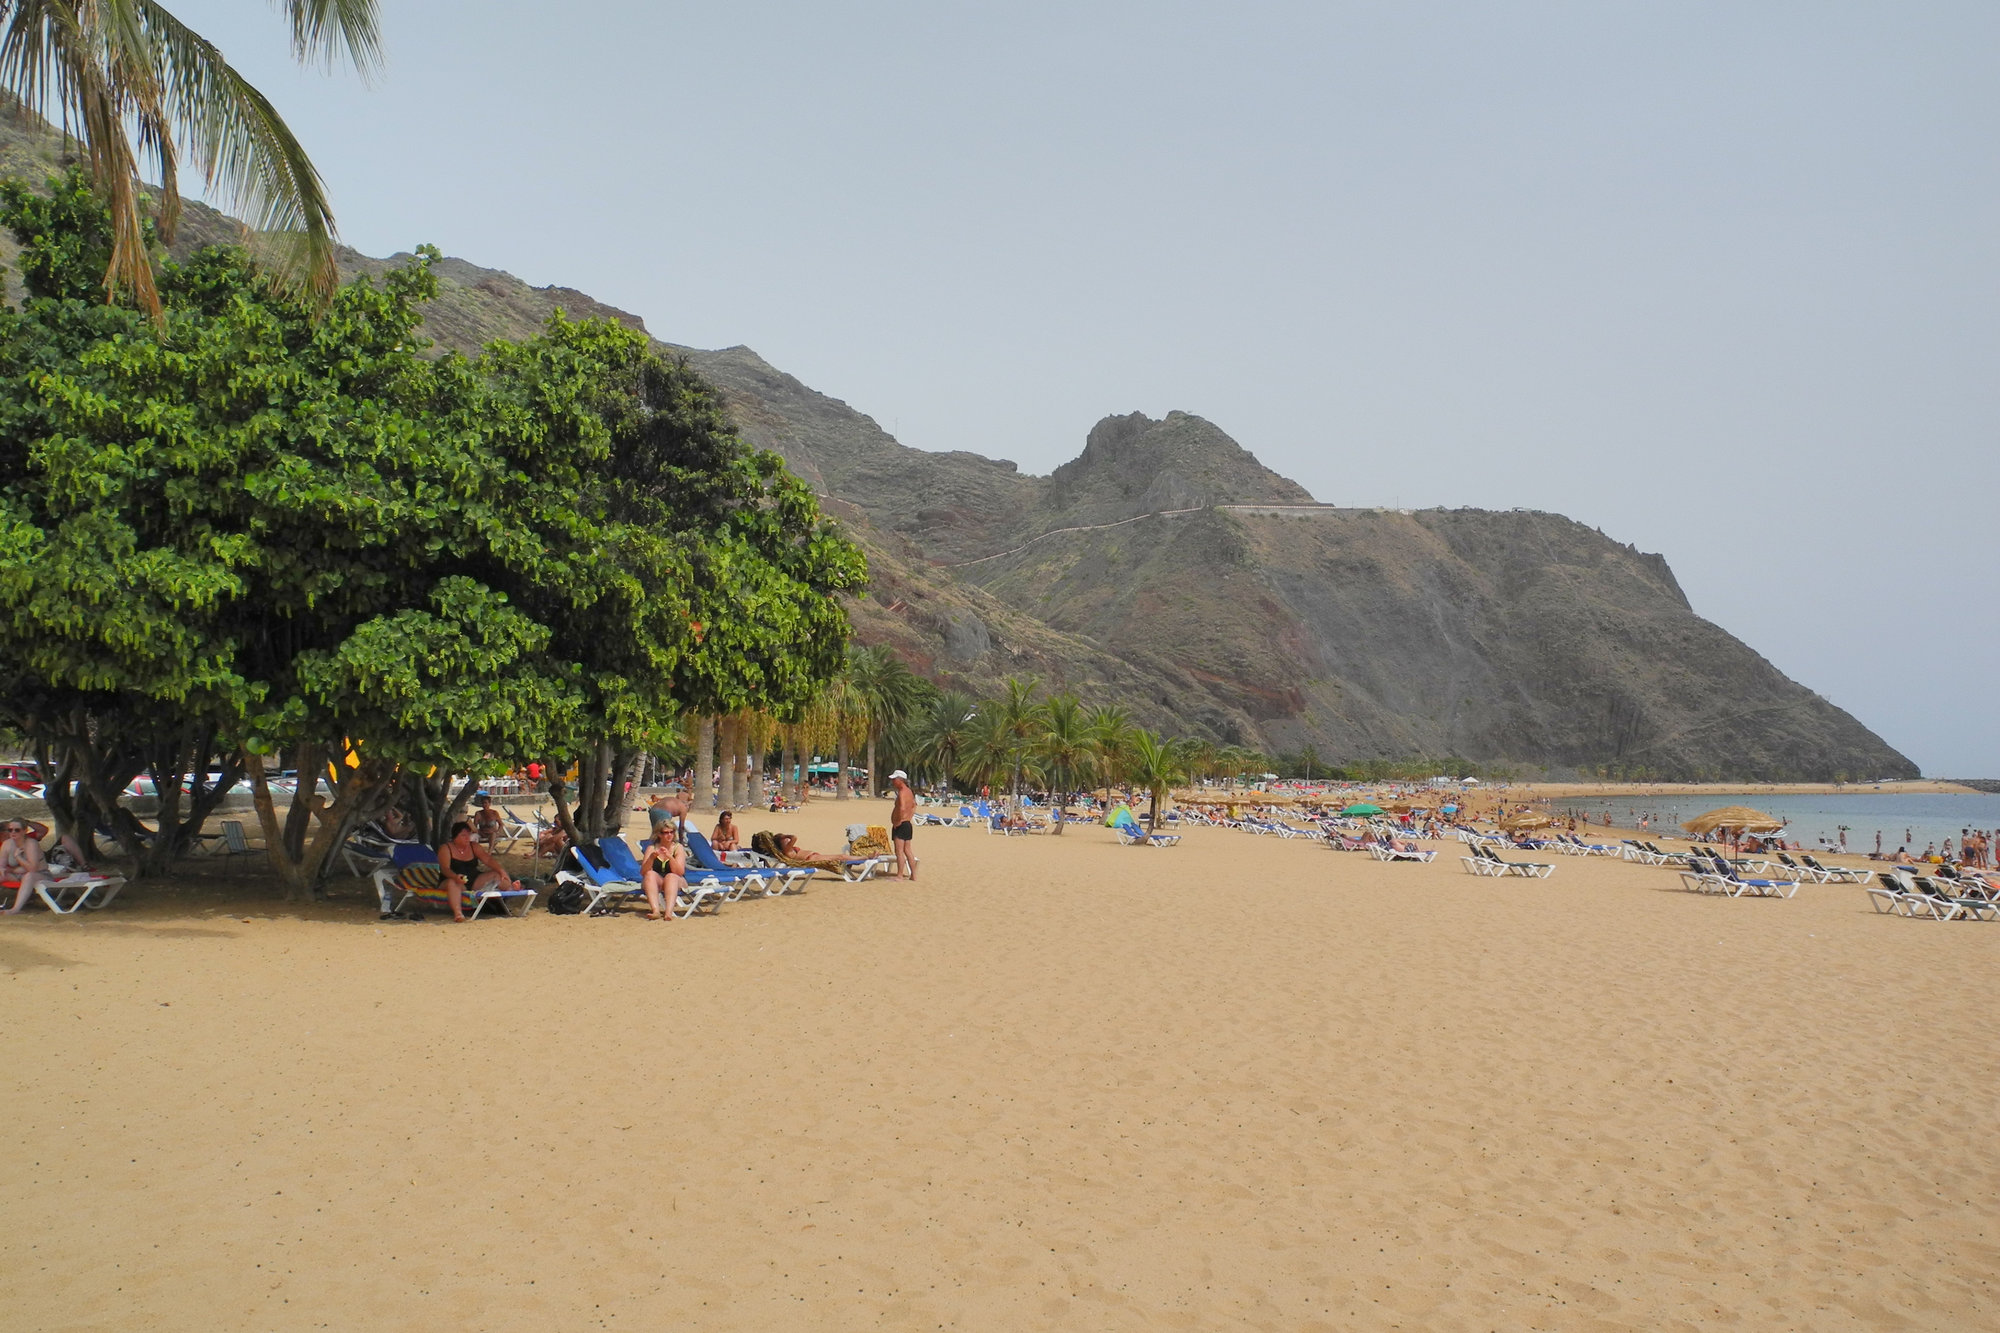 Playa de Las Teresitas  artificial beach with sand from Sahara